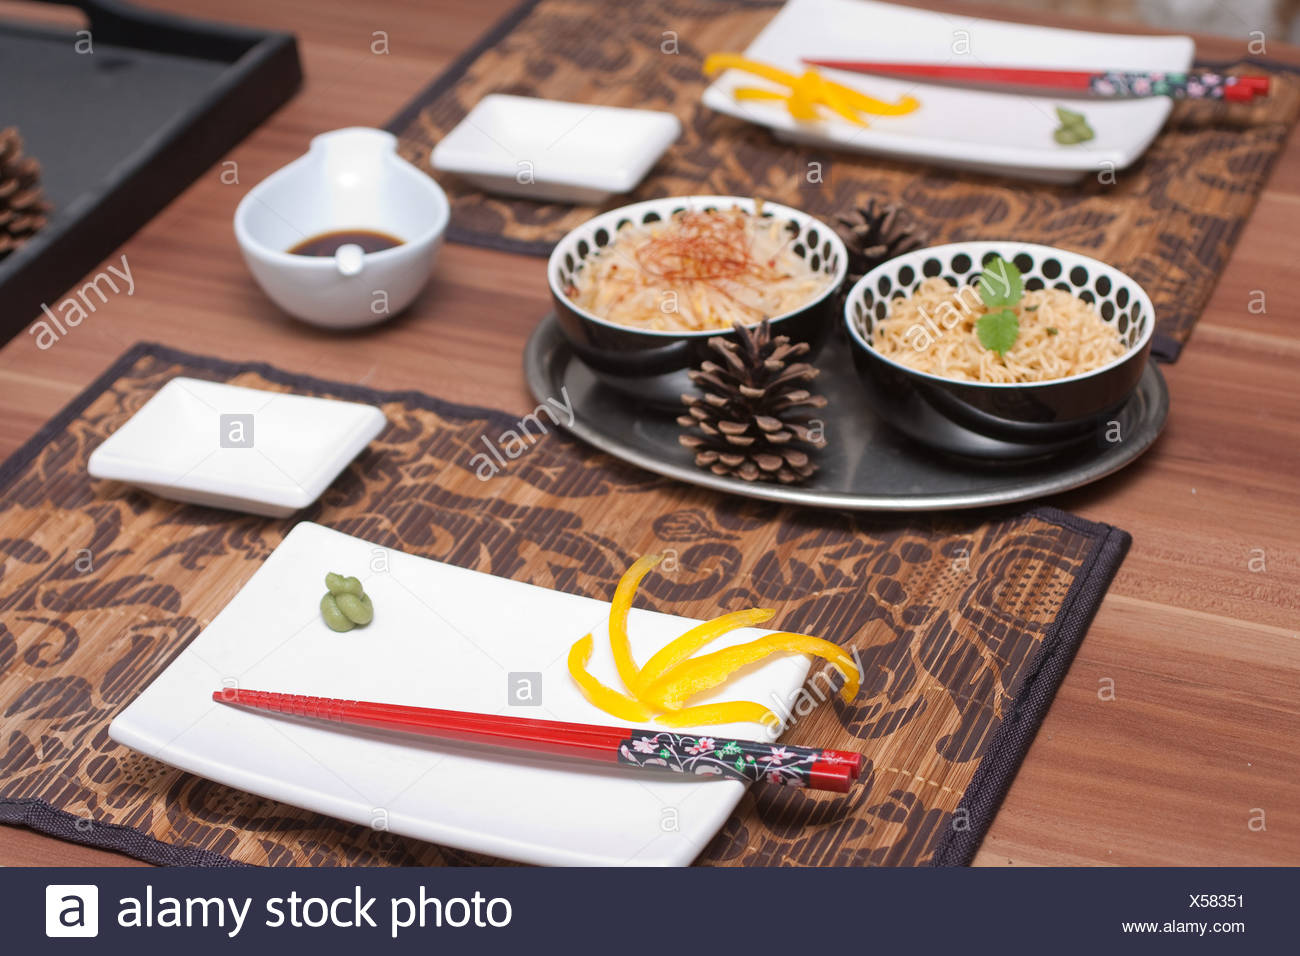 Japanese Laid Table - Stock Image